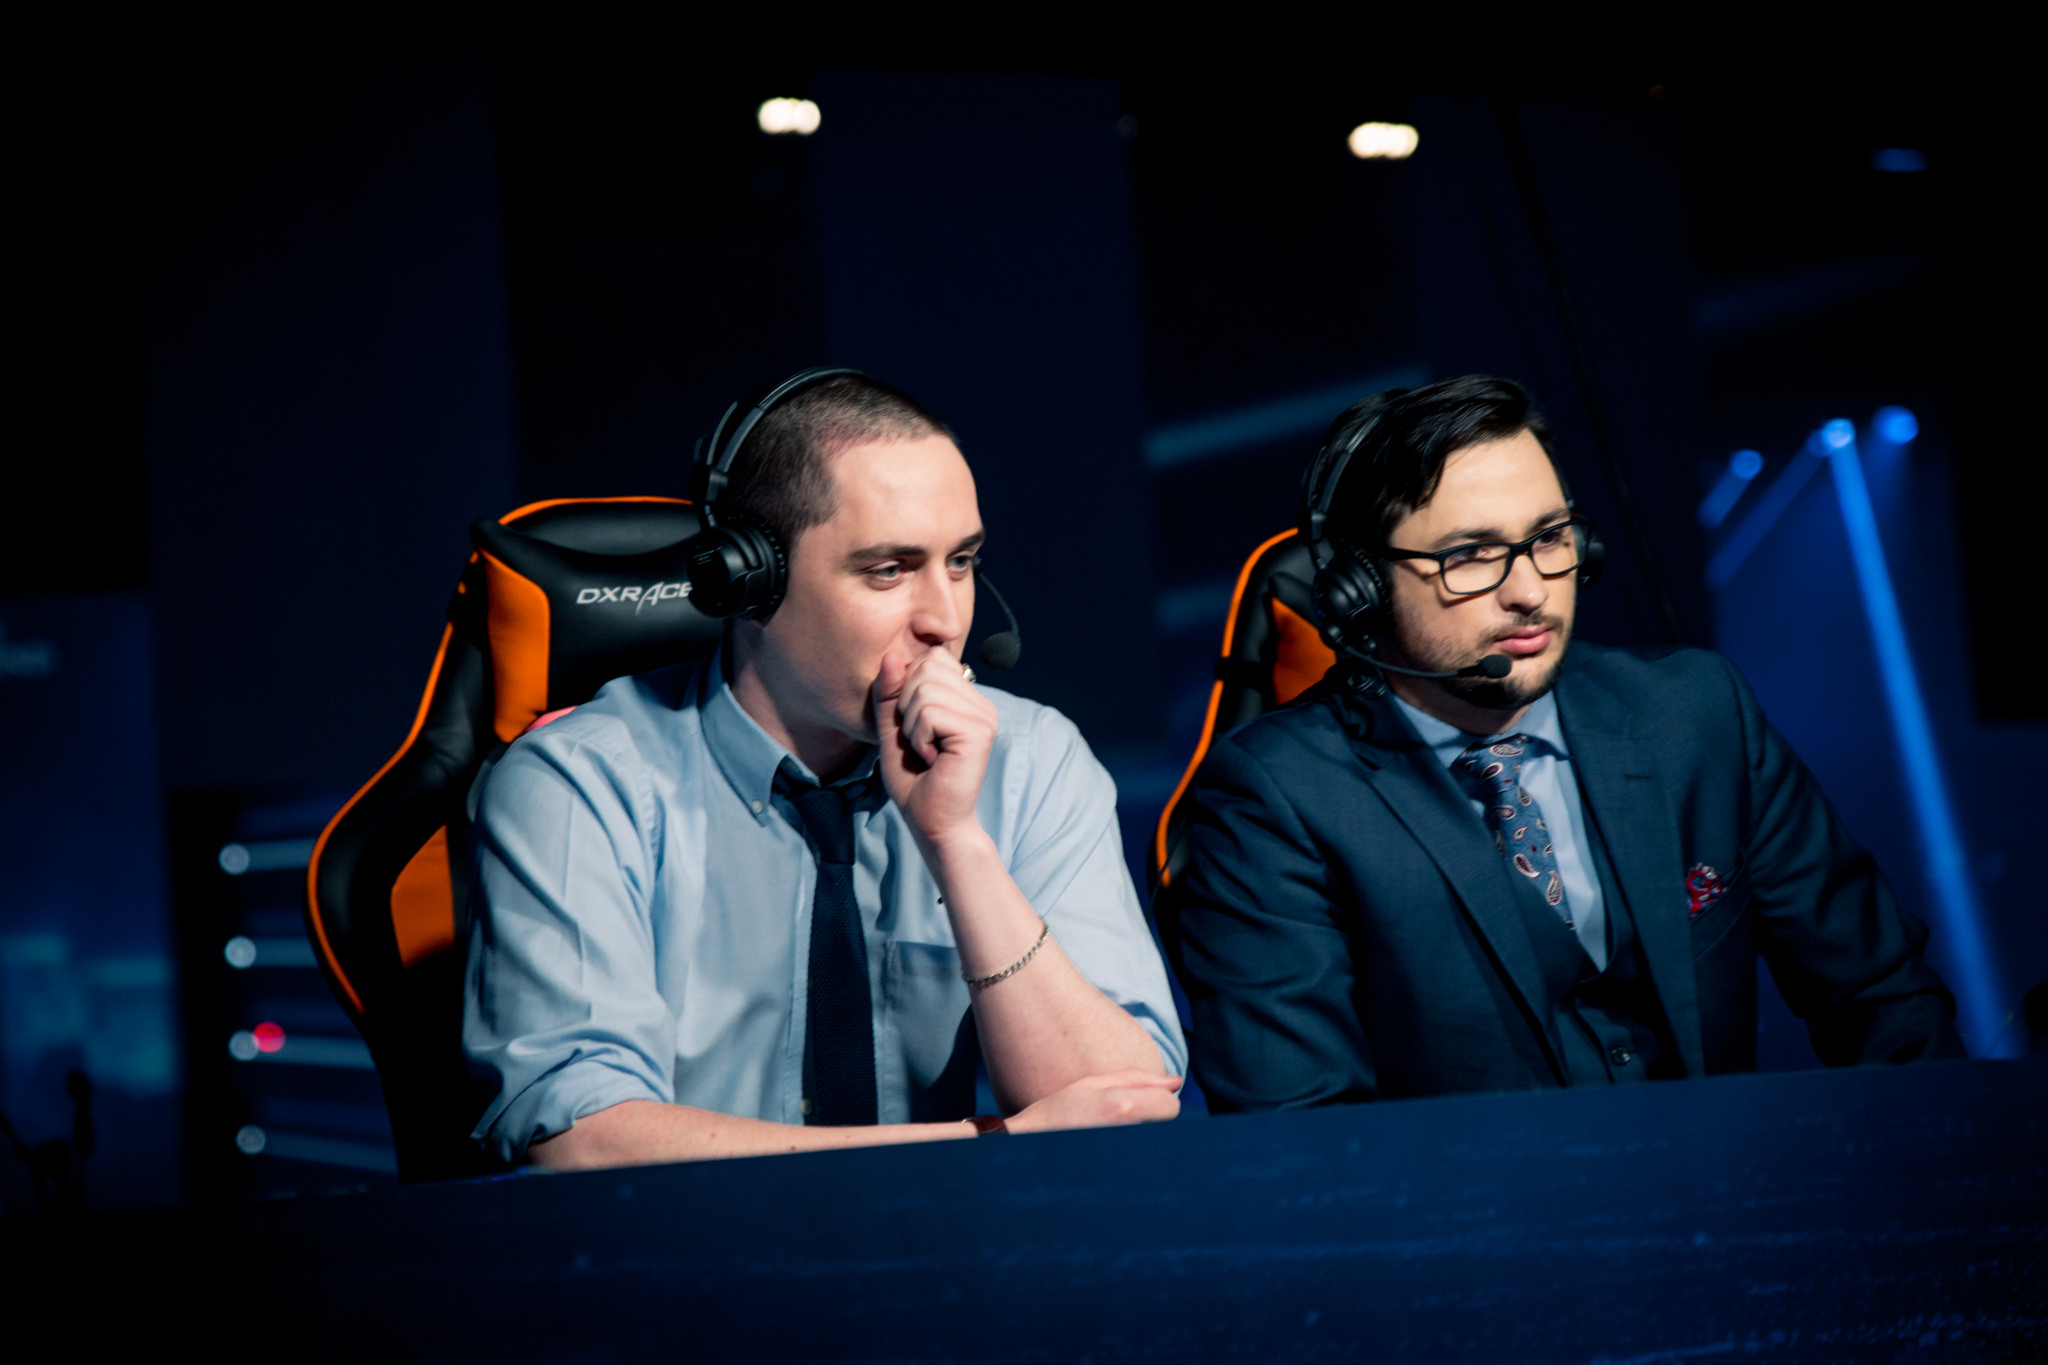 Over the years, HenryG and Sadokist have become essential to have at large events.